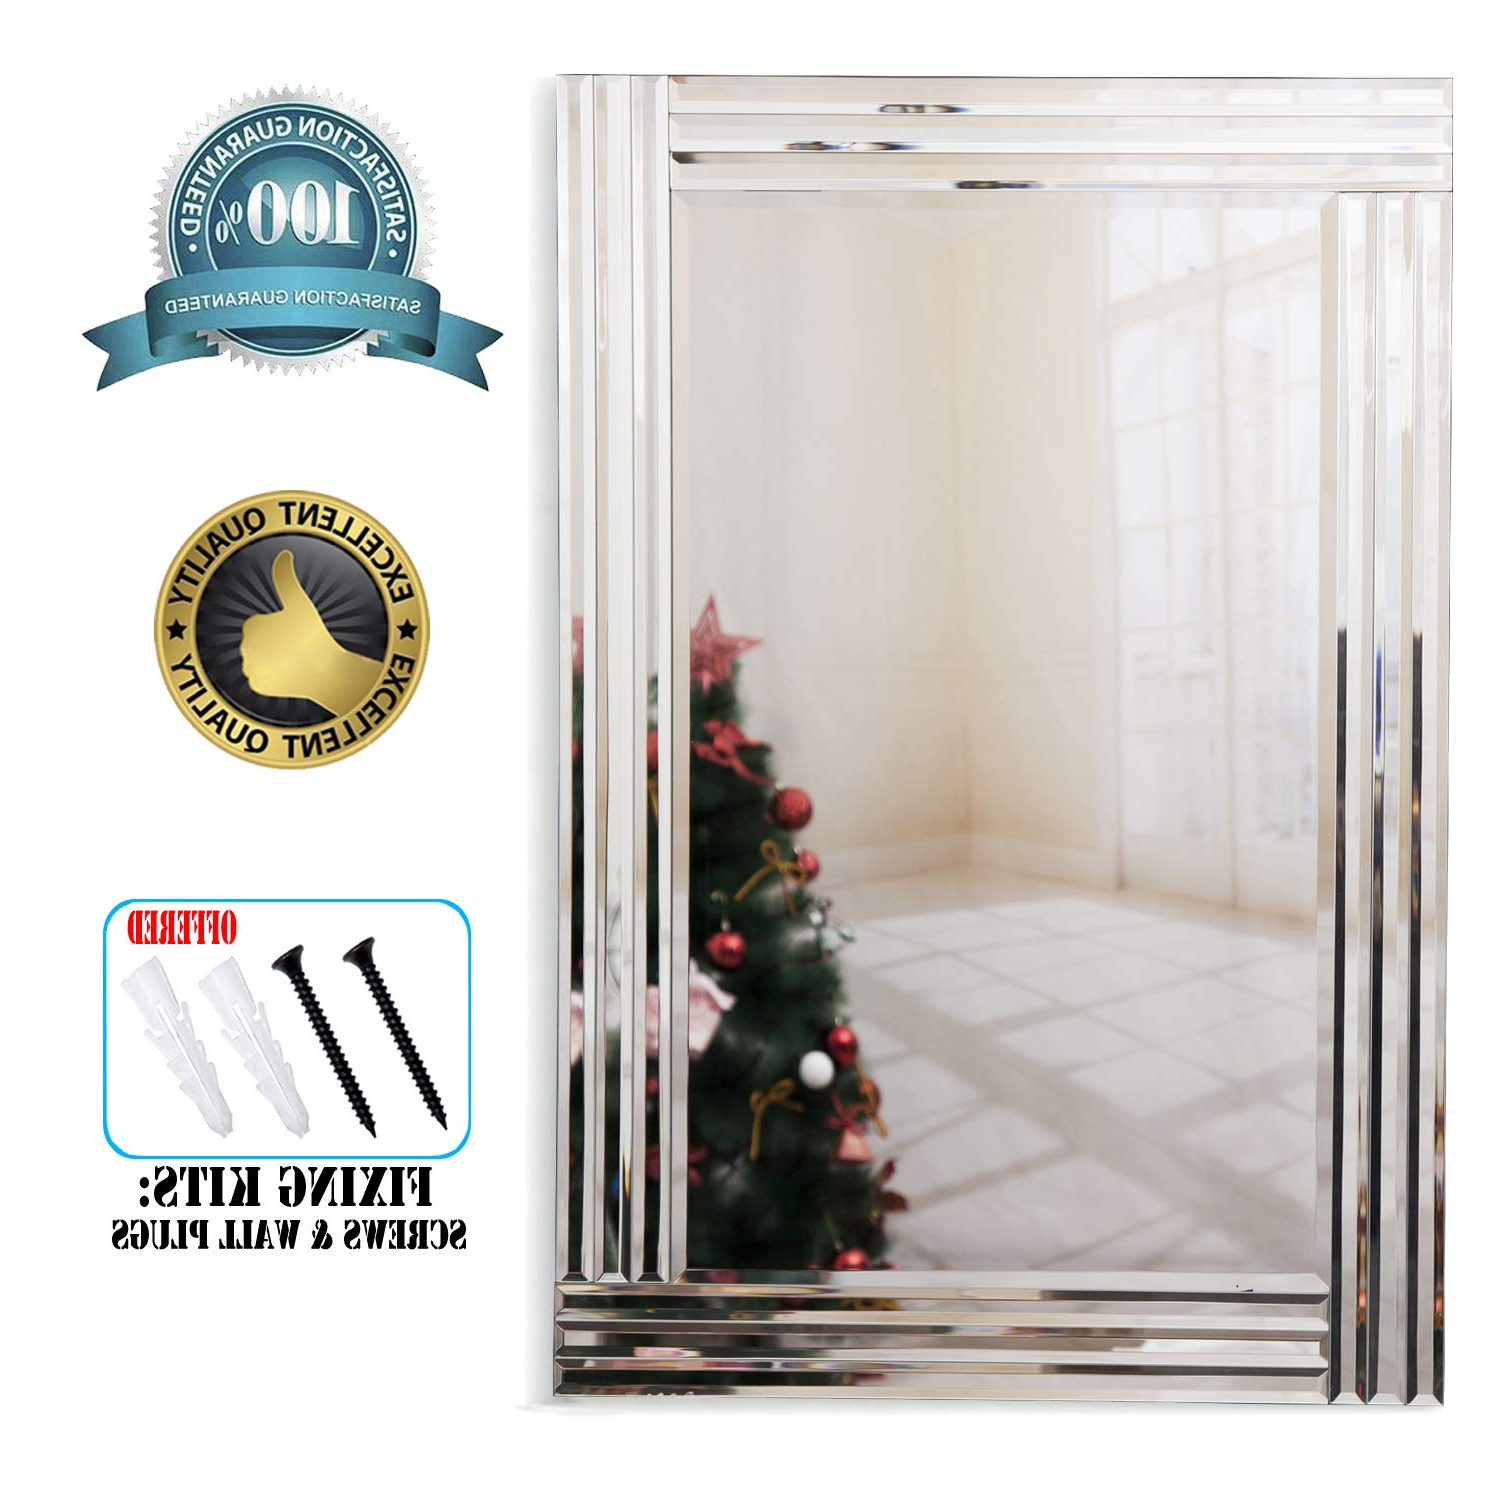 Large Silver Wall Mirrors Regarding Famous Richtop Wall Mirror Triple Bevelled Edges Rectangle Large Silver Wall Mounted Mirror For Living Room, Hallway,office(90x60cm) (View 20 of 20)